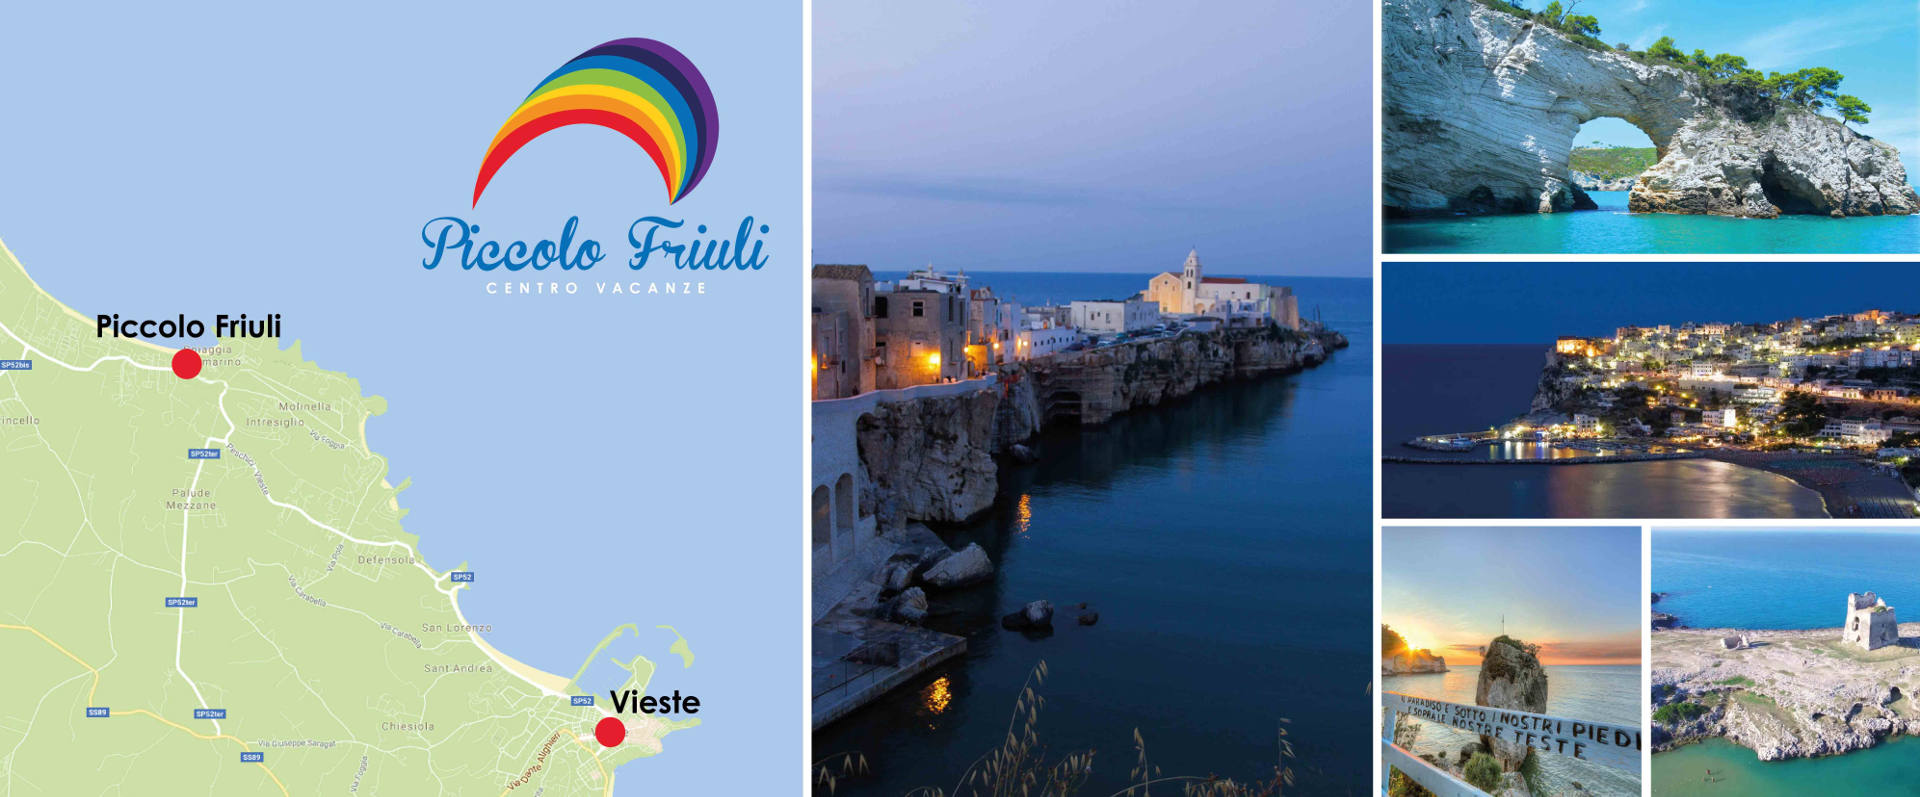 collage photo of Vieste attractions an Piccolo Friuli position